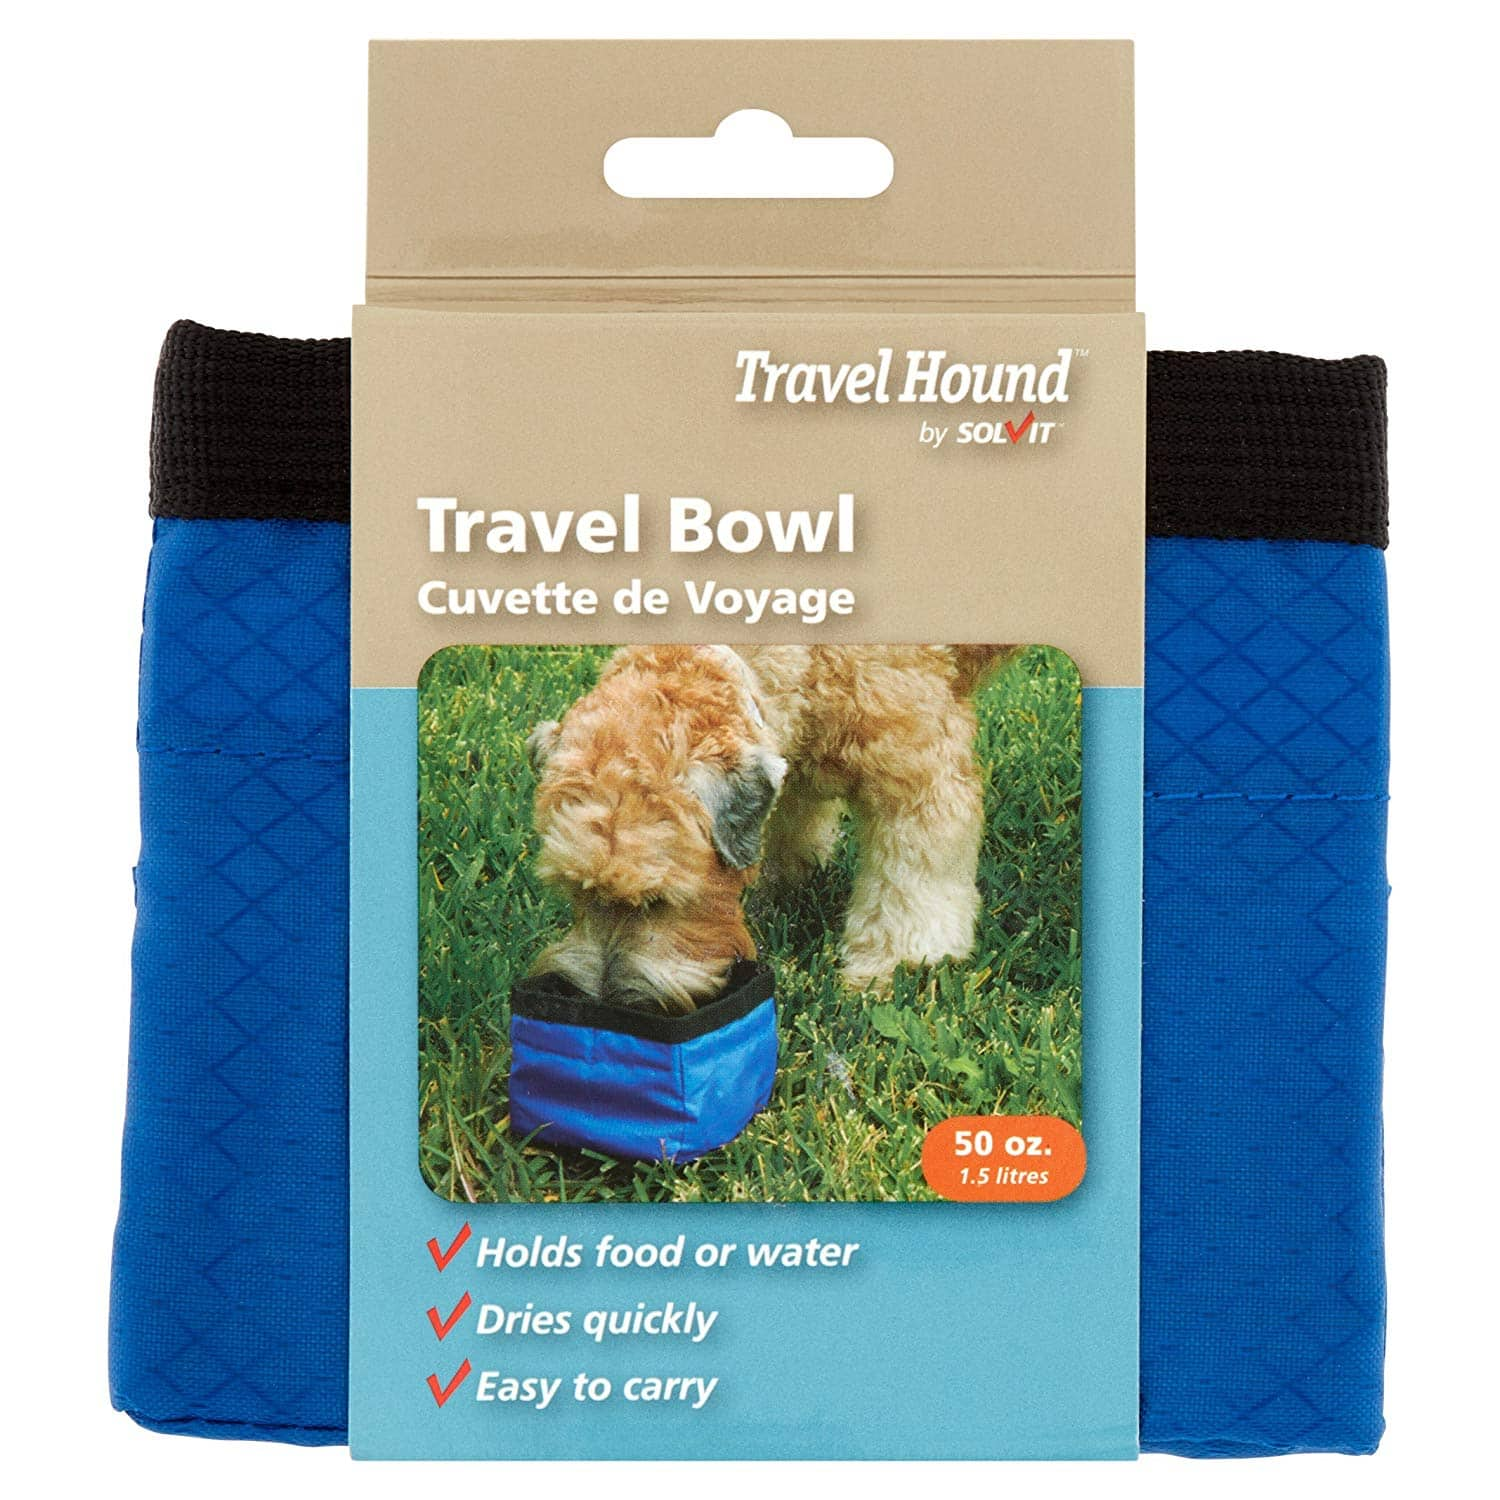 Solvit Collapsible Travel Bowl for Pets, 50 oz, Blue/Red $1.67 FS w/ Prime